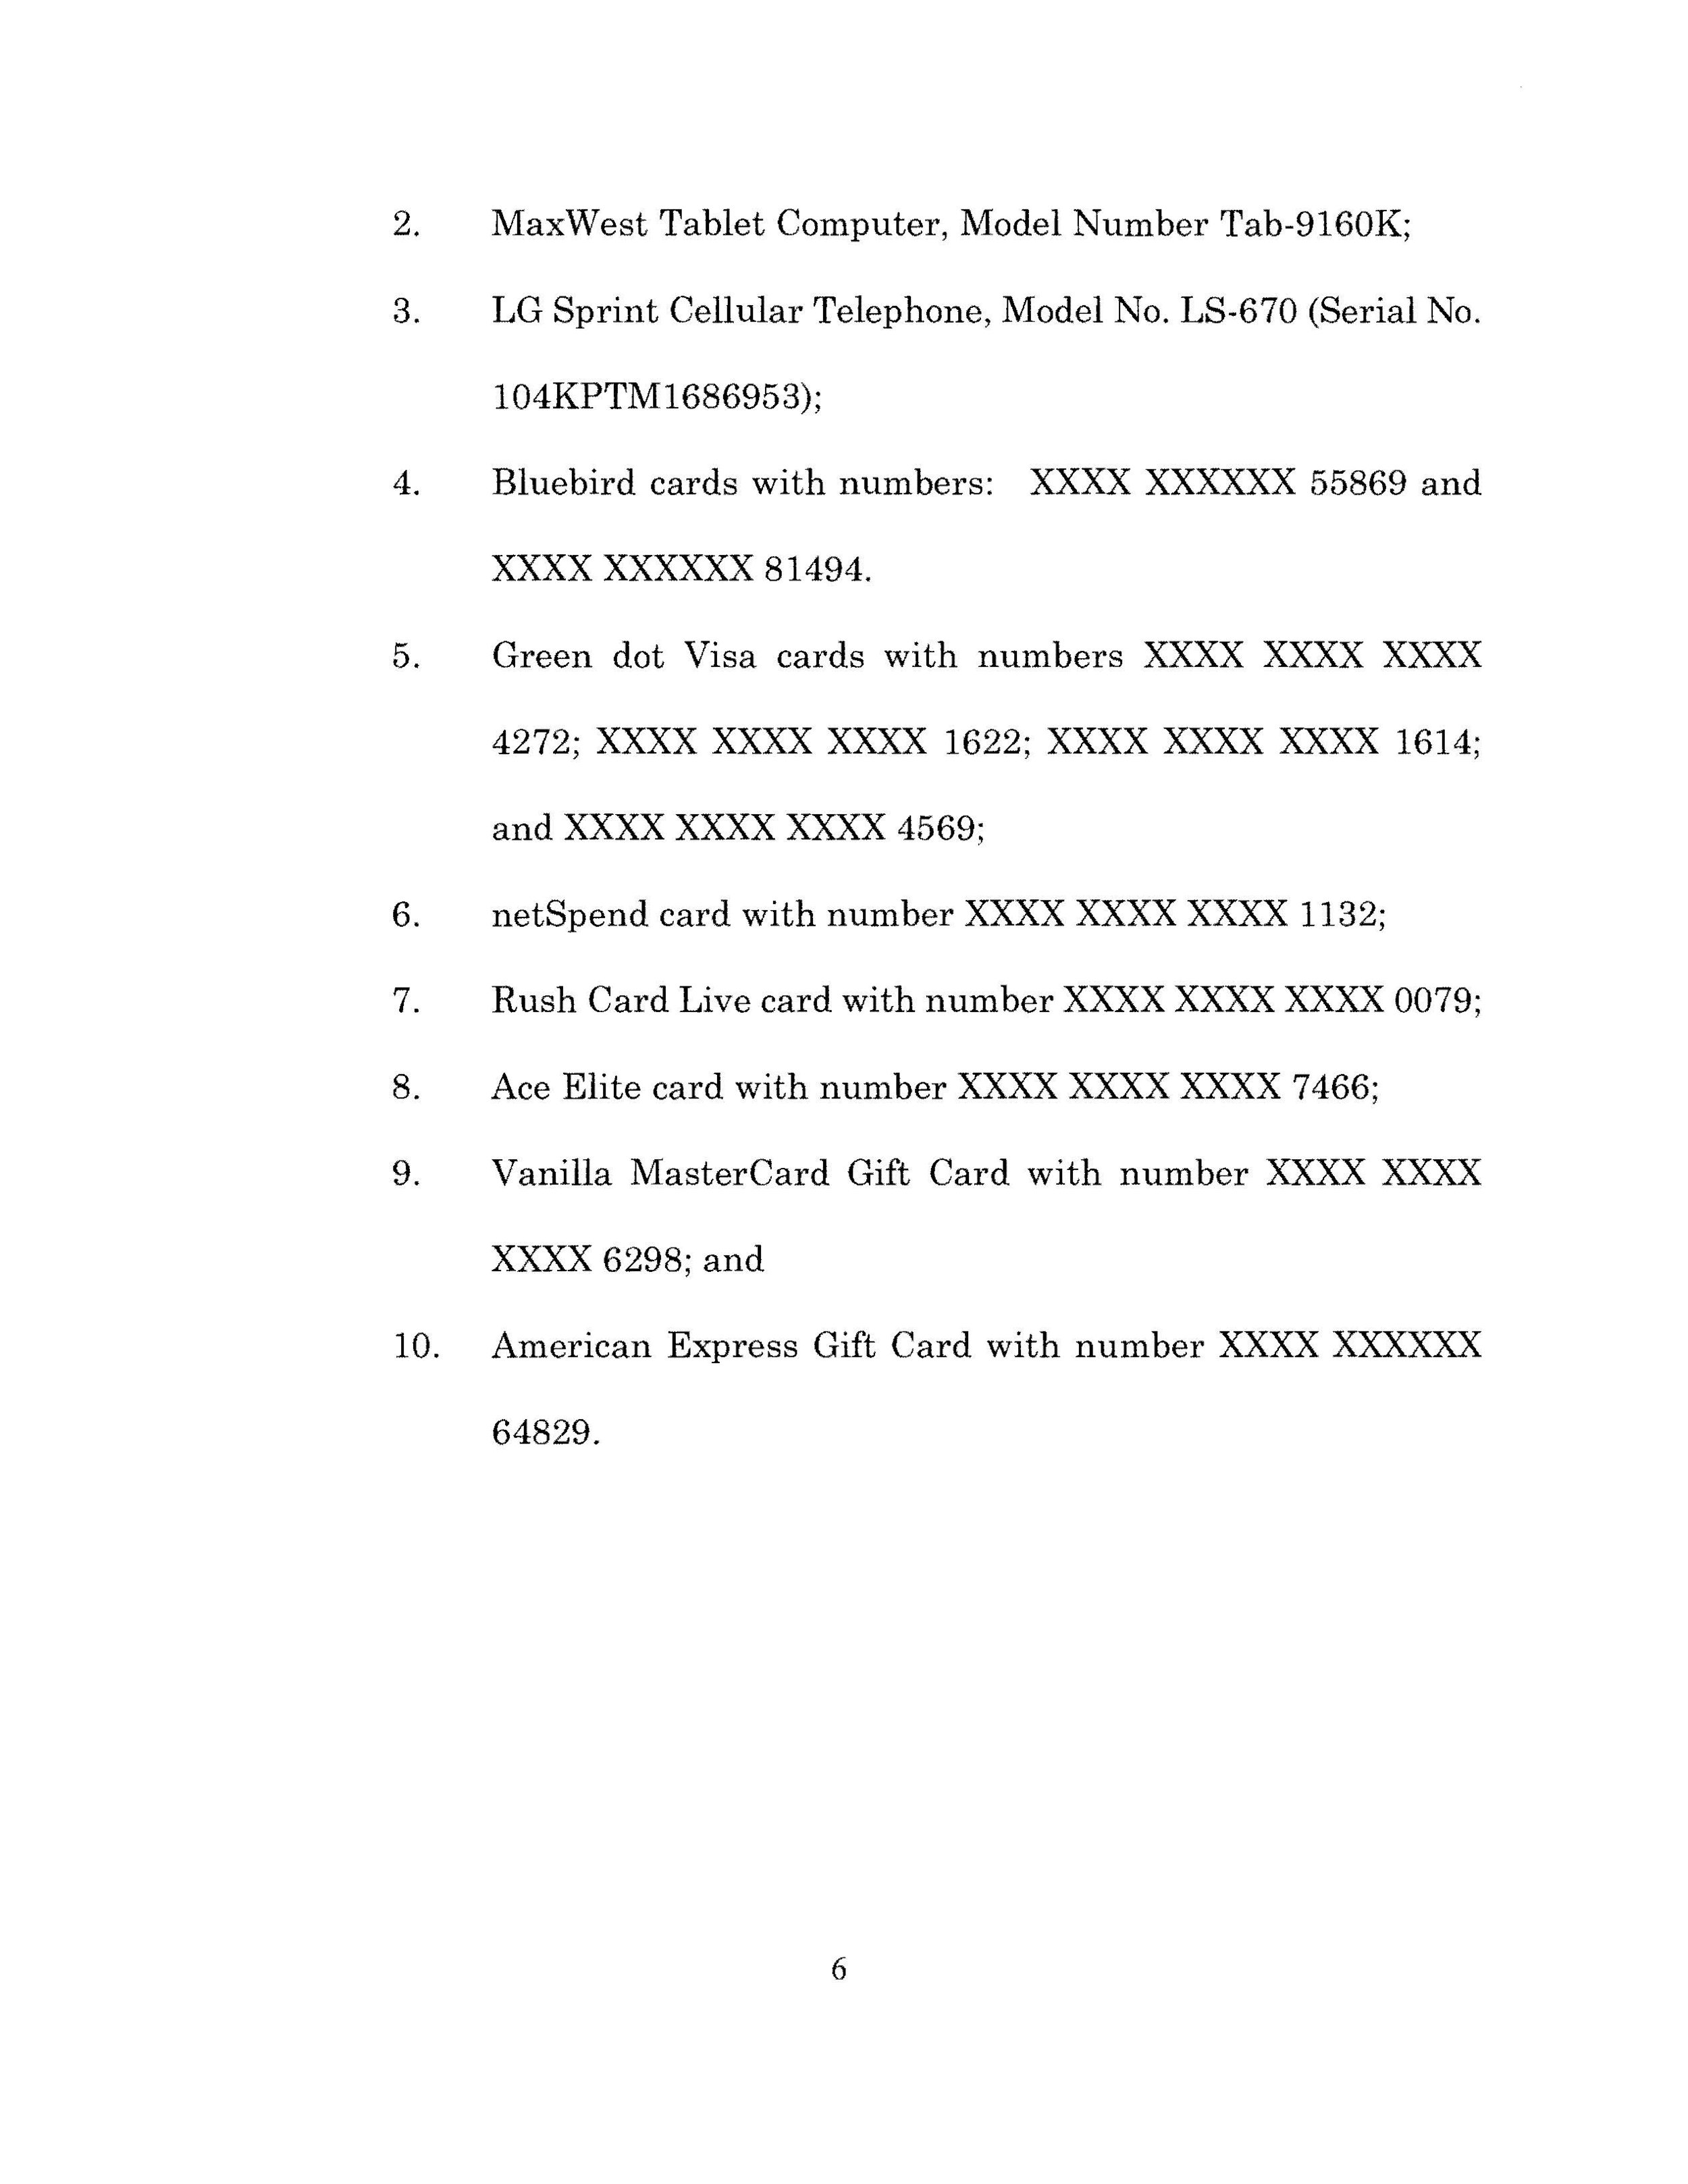 Maurice Johnson Indictment_Page_06_Image_0001.jpg